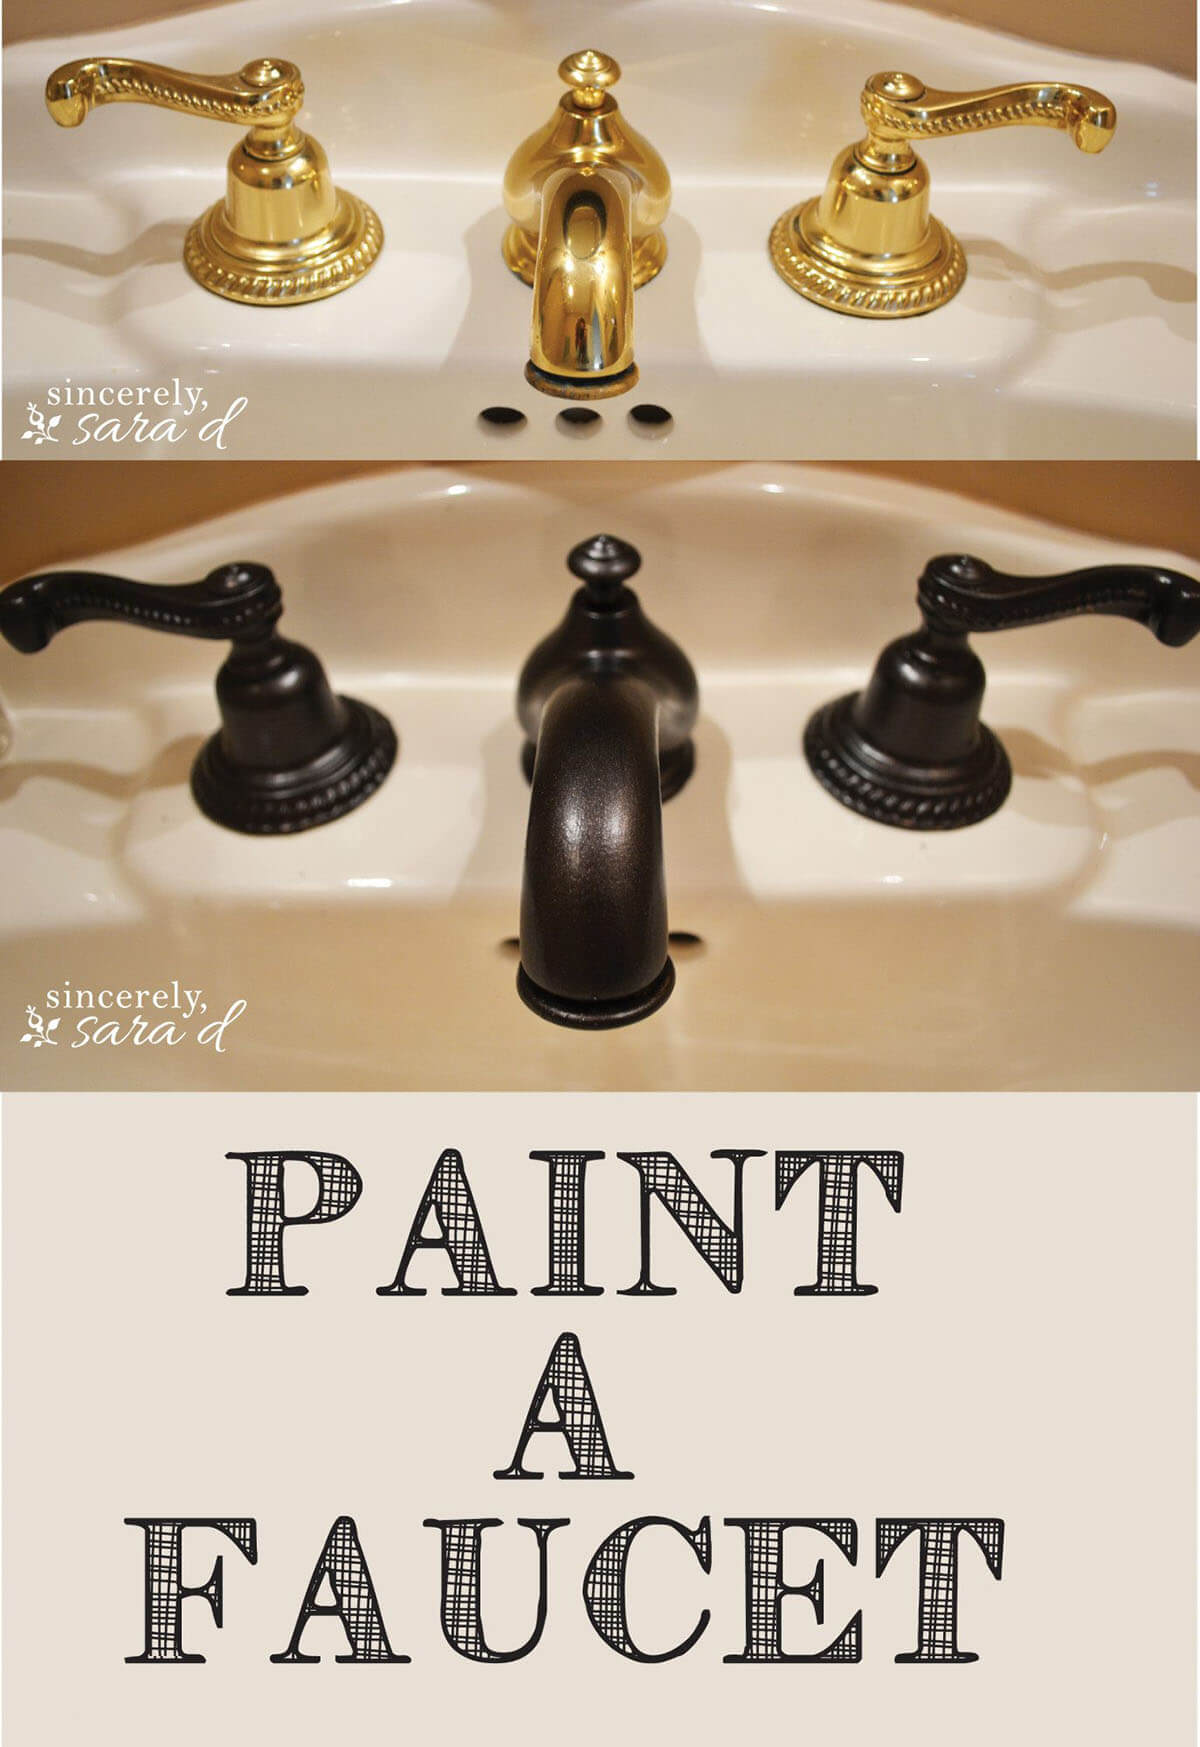 From Dated Brass to Modern Black Faucets